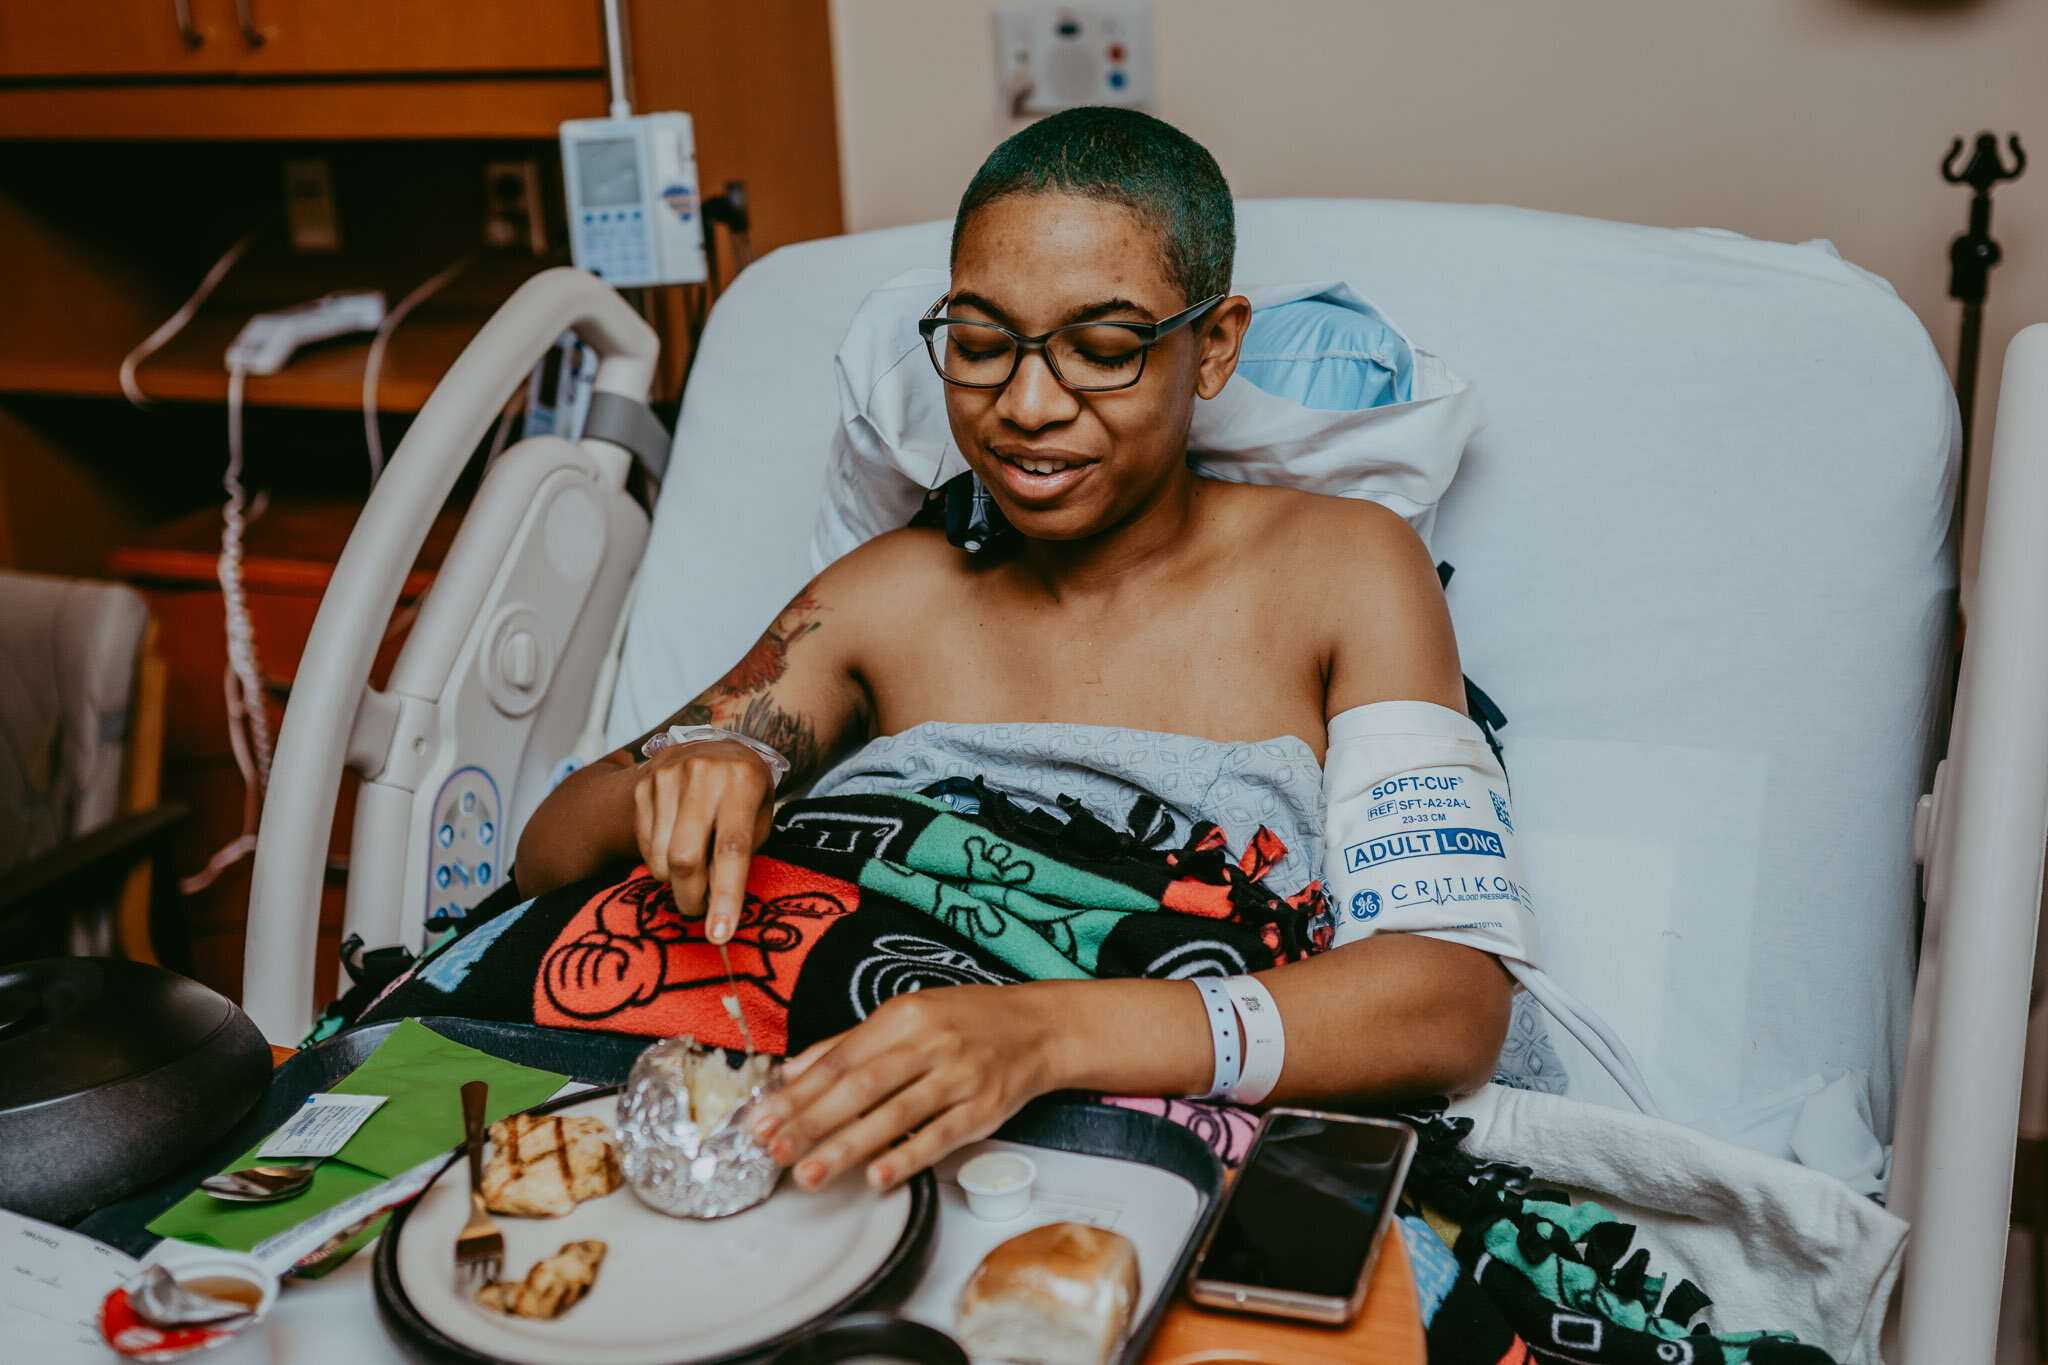 mom keeping warm under blanket and eating after giving birth